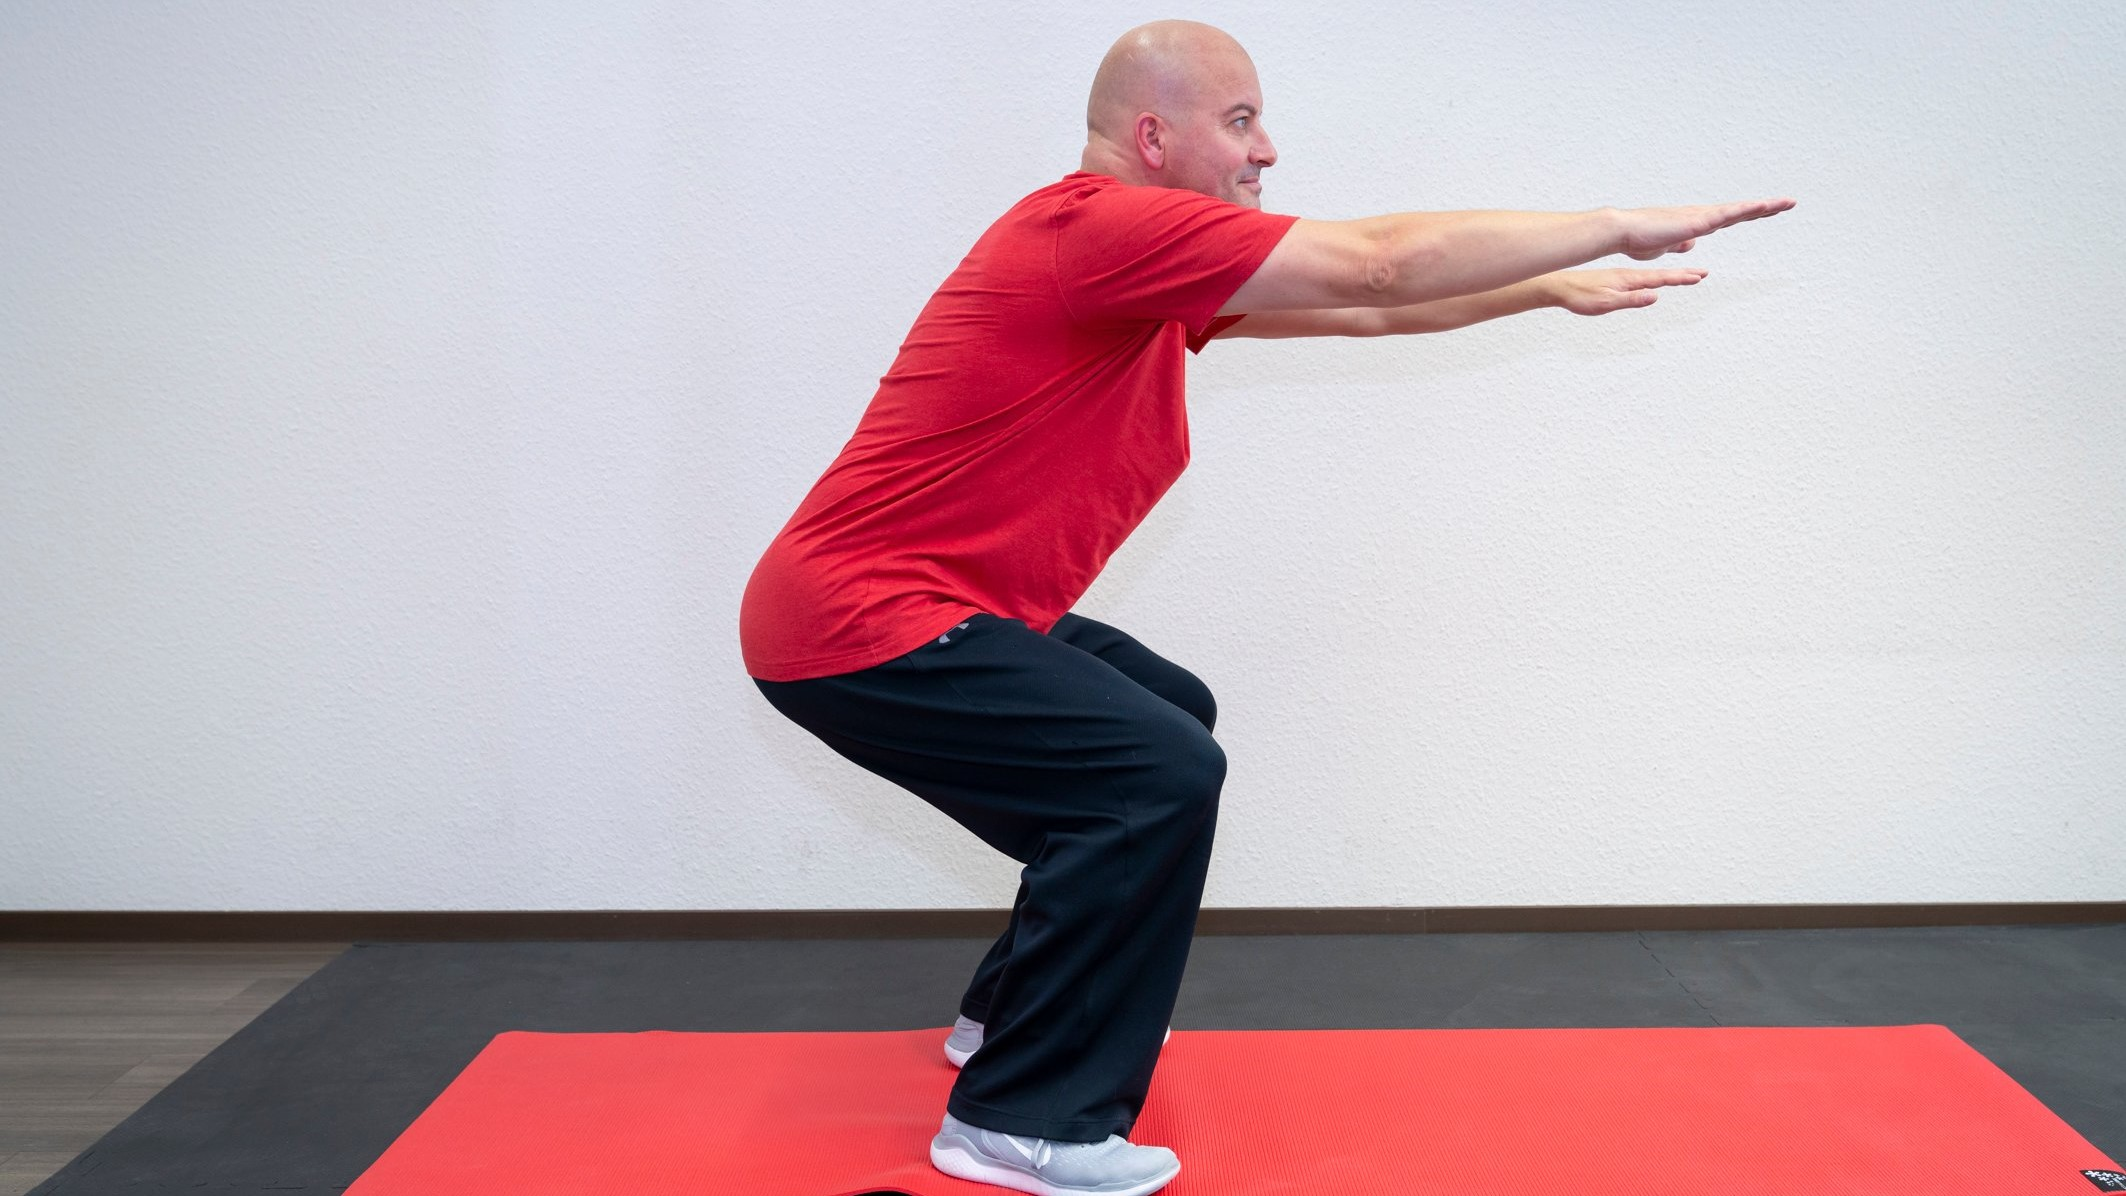 core stability kniebeuge